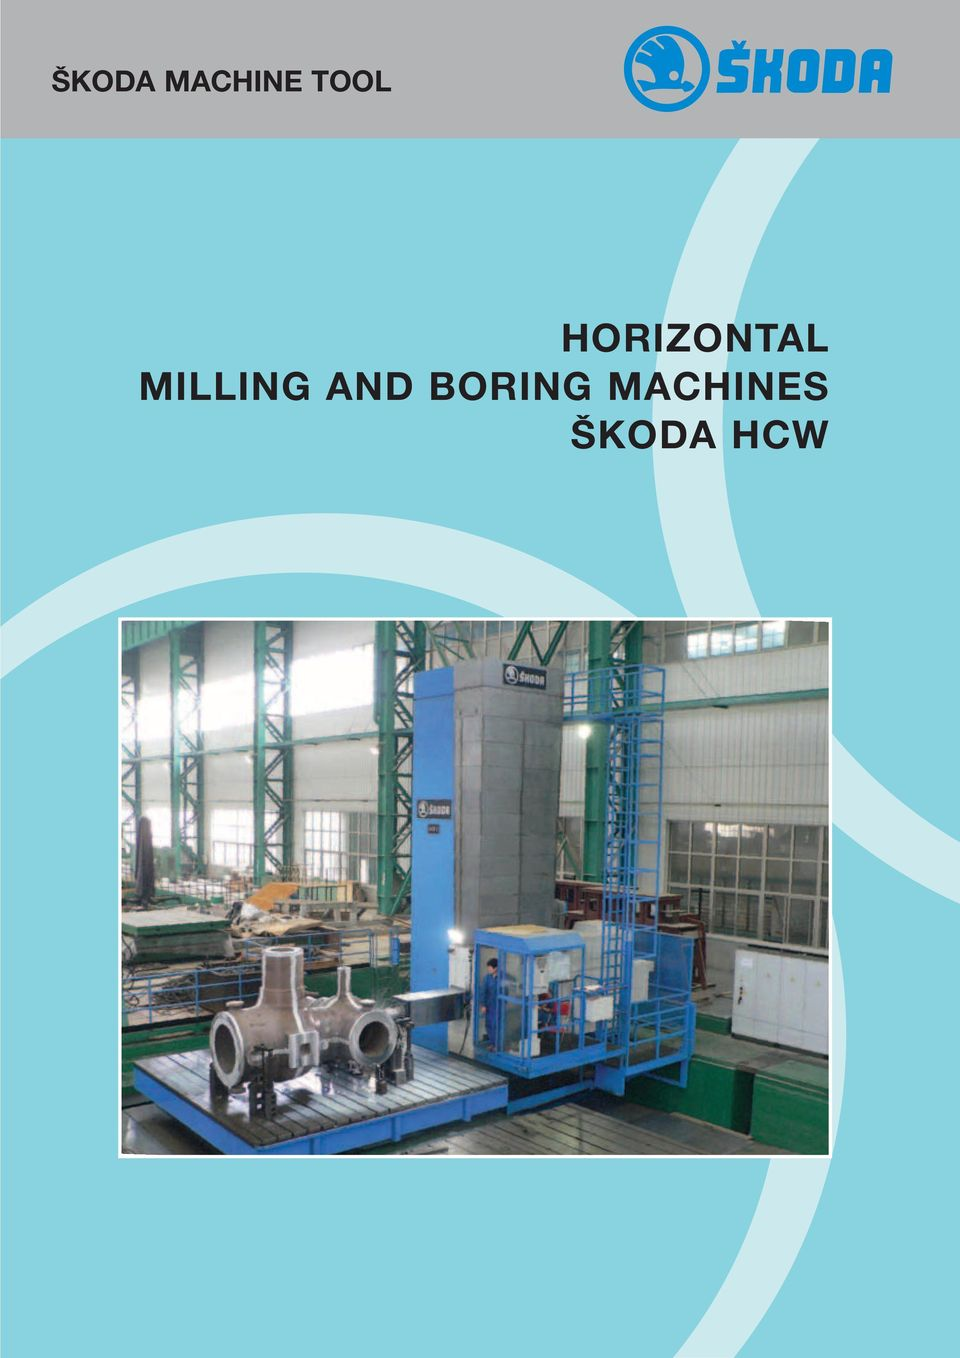 MILLING AND